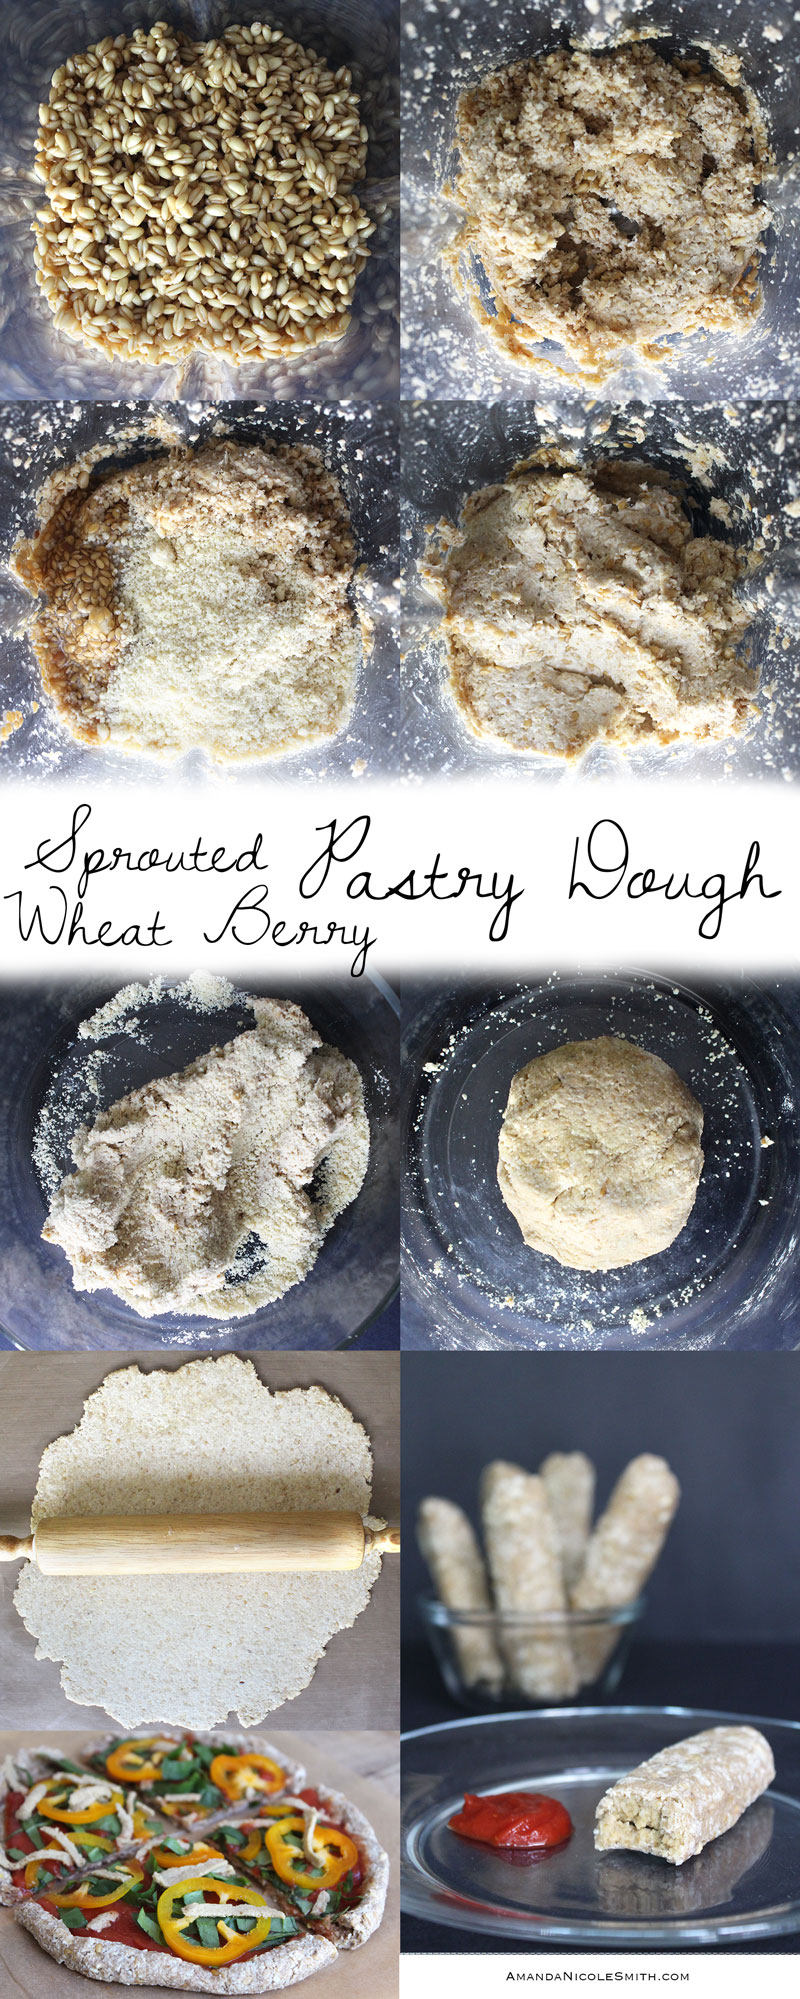 How To Make Sprouted Wheat Berry Pastry Dough